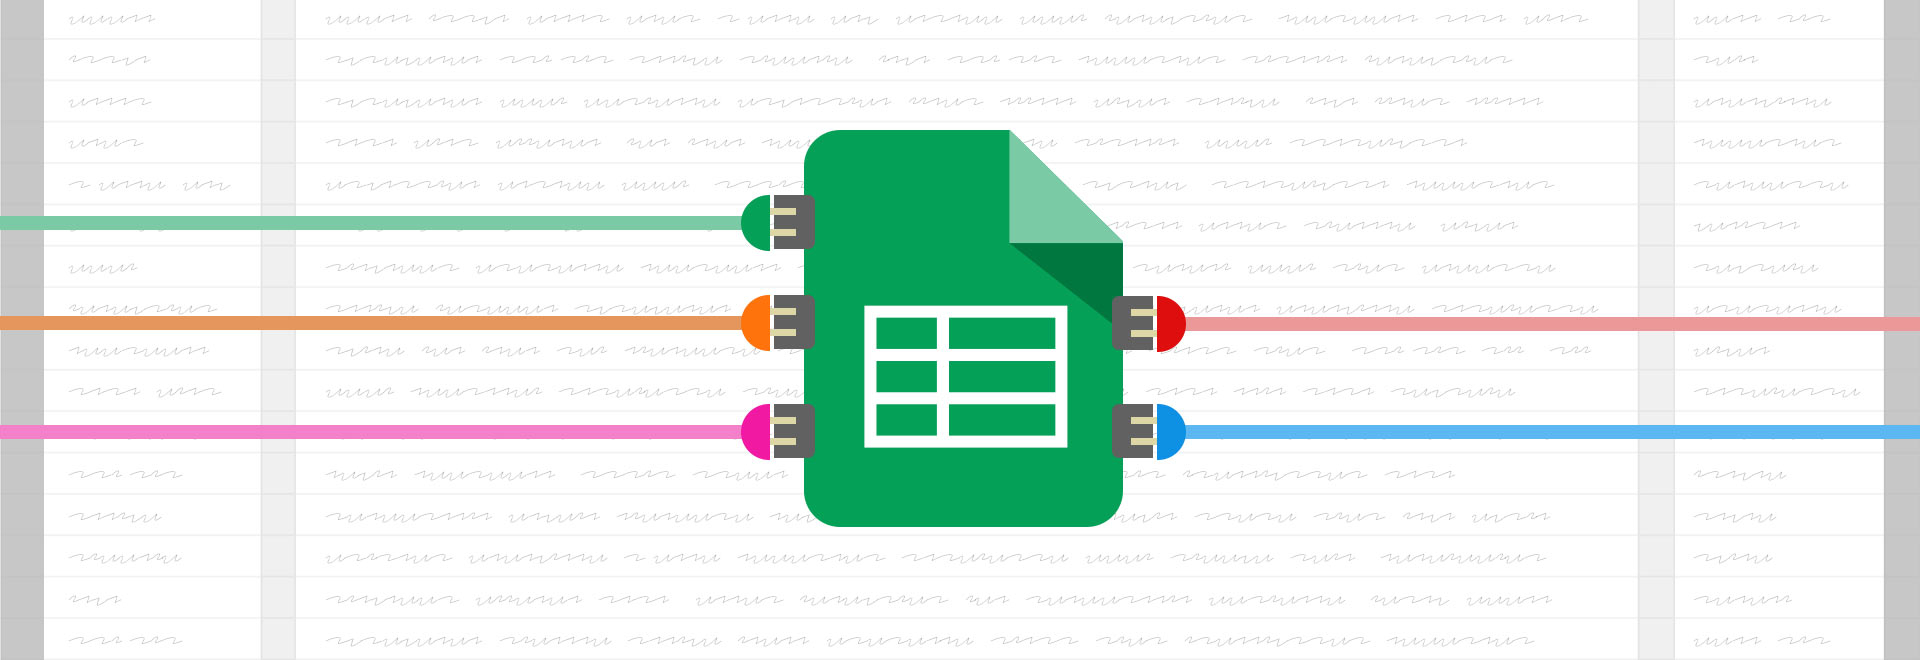 Google Spreadsheet Dashboard Throughout Integration And Dashboard Tools With Google Sheets